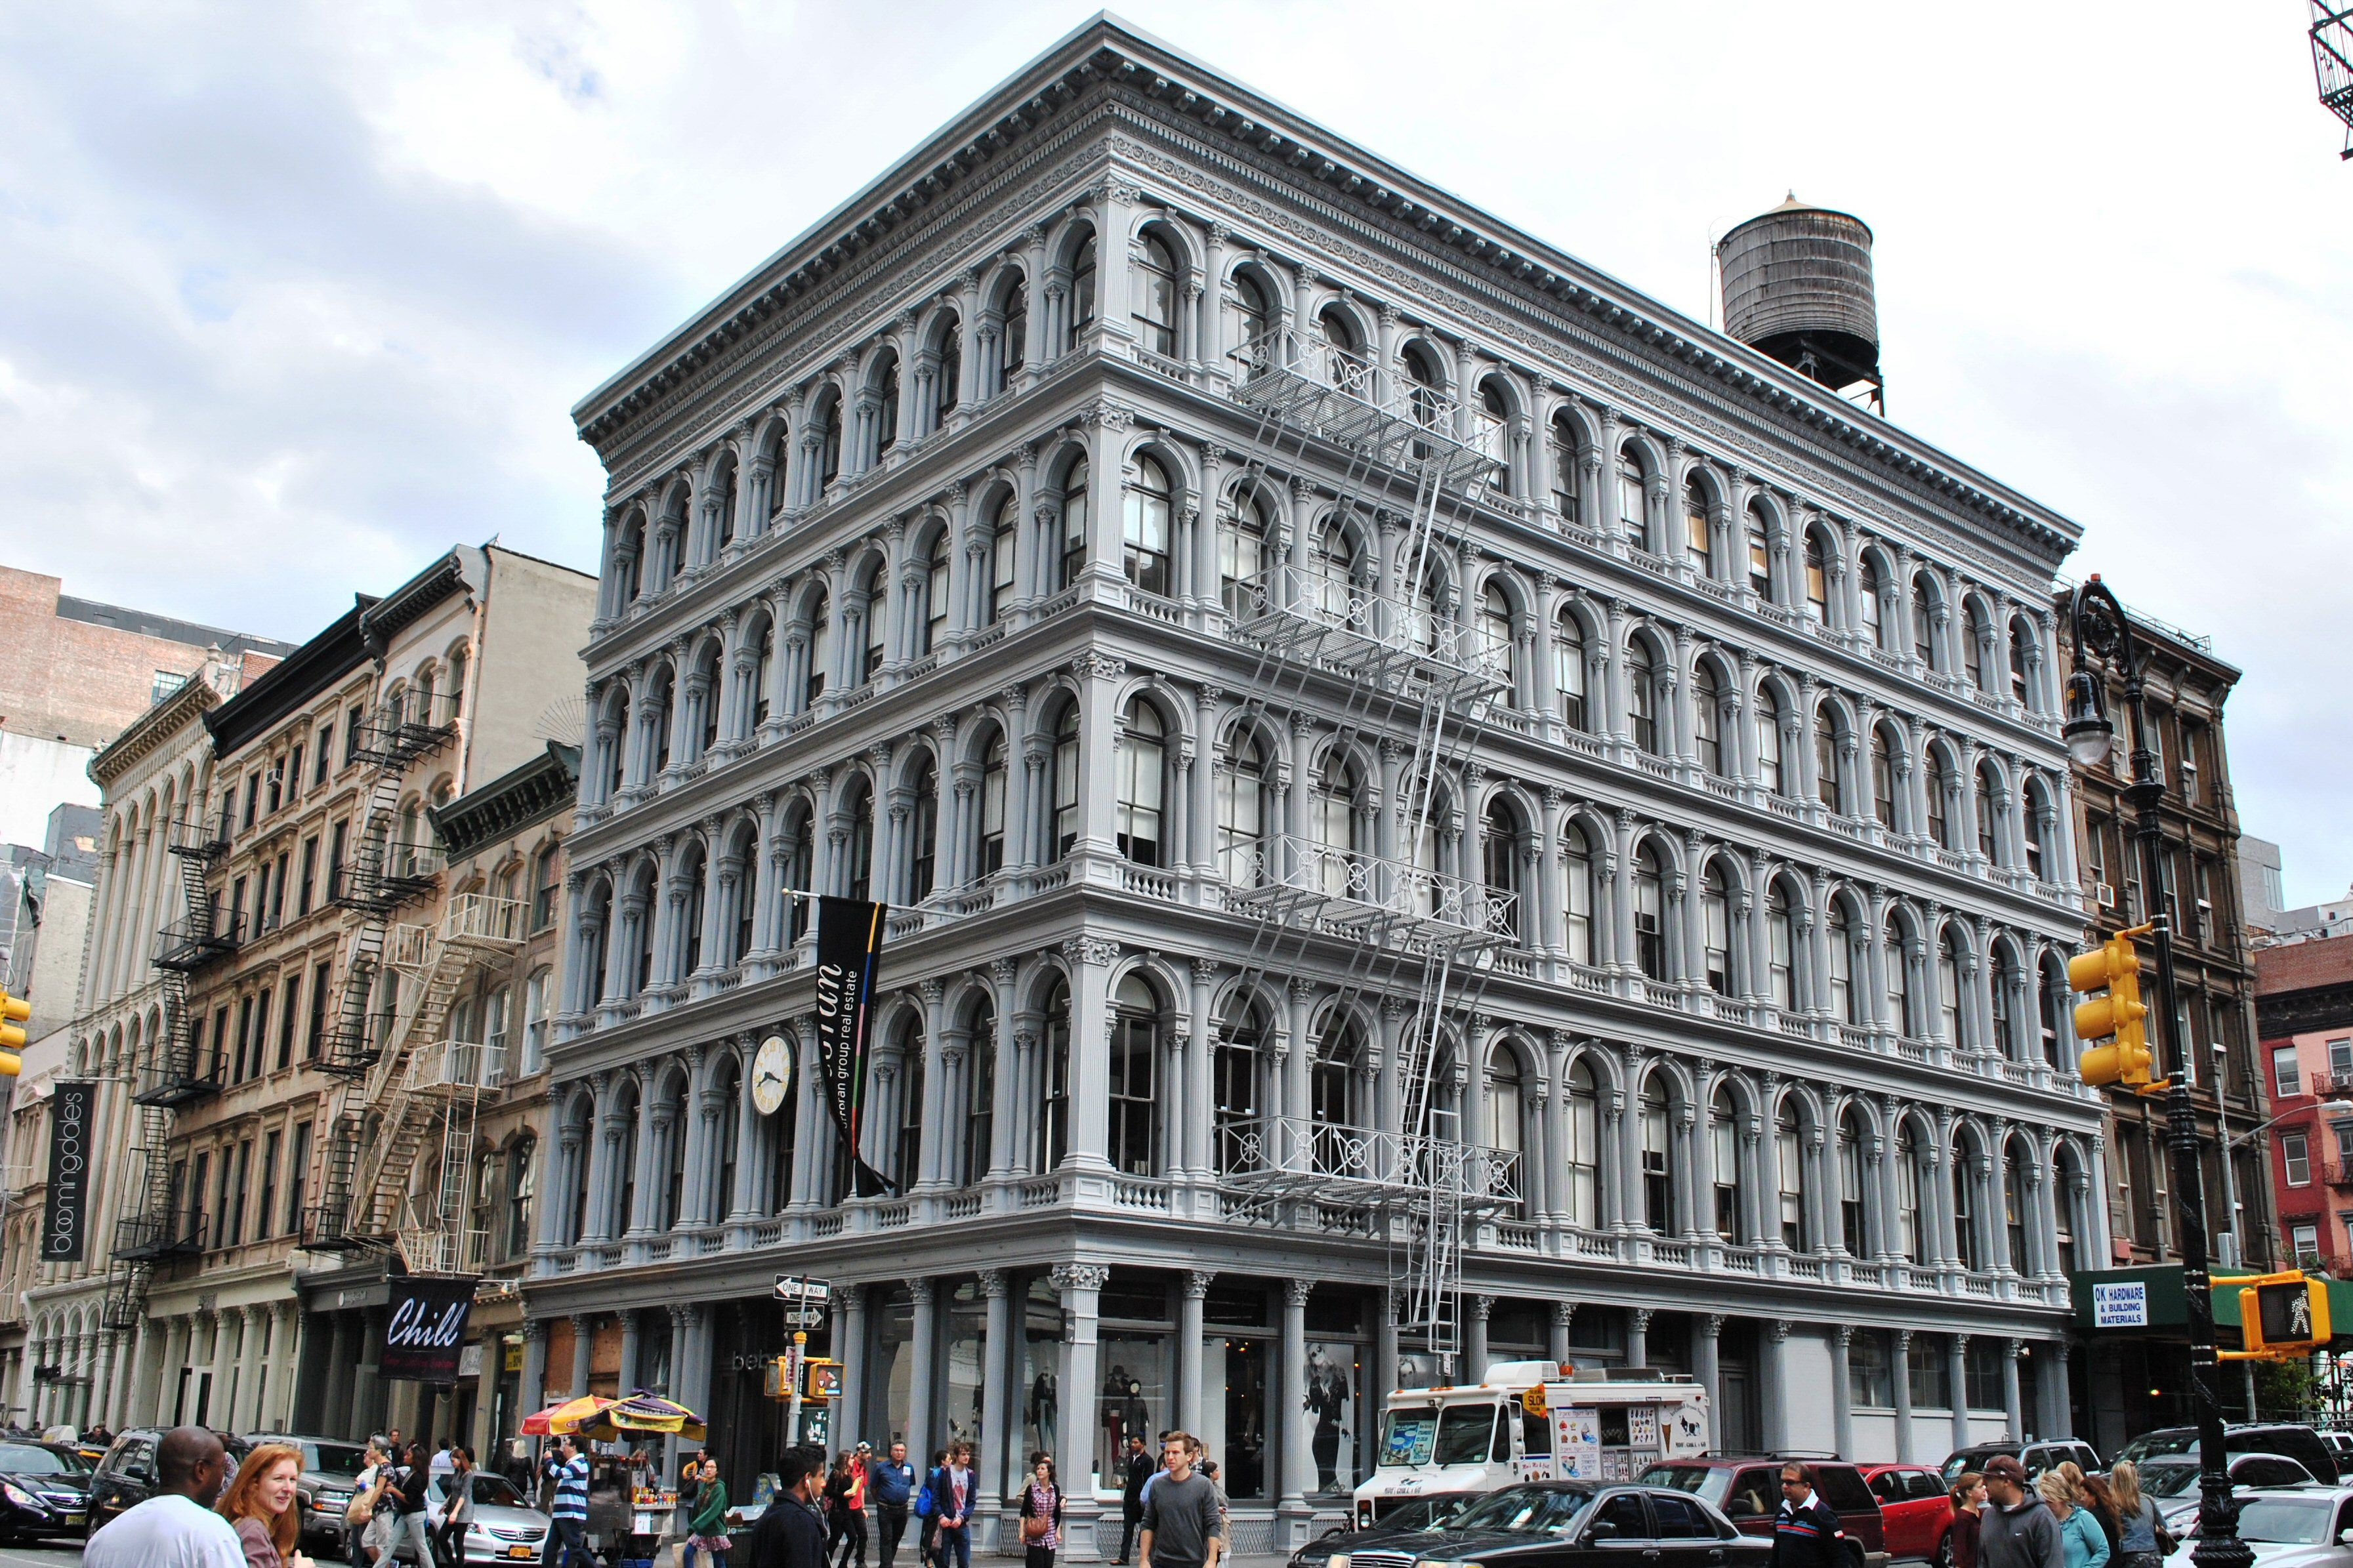 Photo taken in 2011 of two cast-iron facades of Haughwout Store in New York City